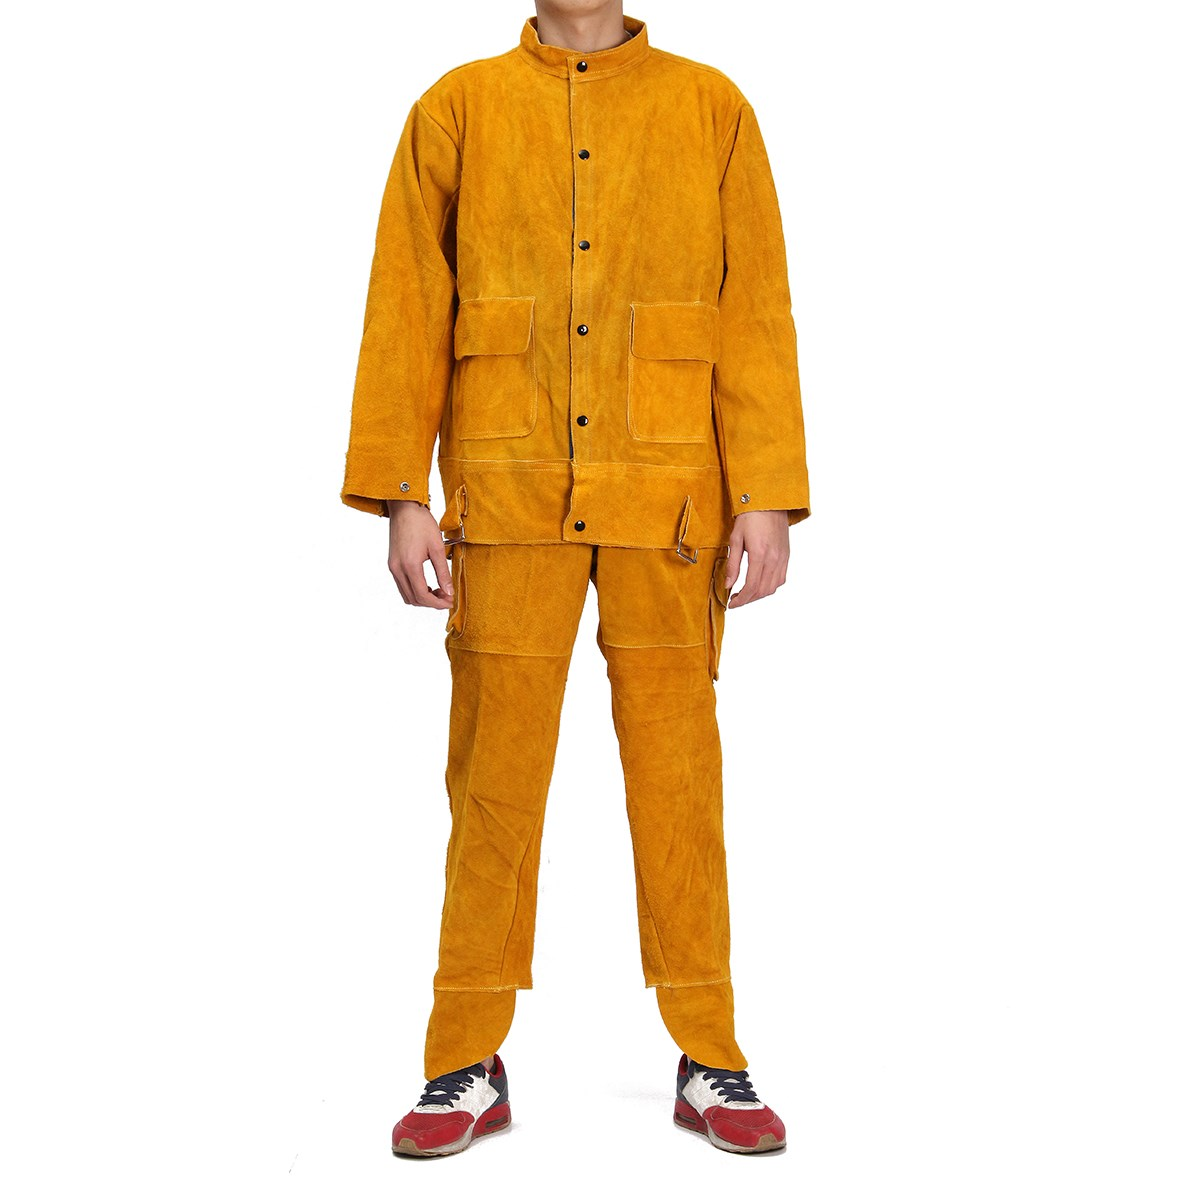 NEW One Set Leather Welding Strap Trousers & Coat Protective Clothing Apparel Suit Welder Safety Clothing welder machine plasma cutter welder mask for welder machine